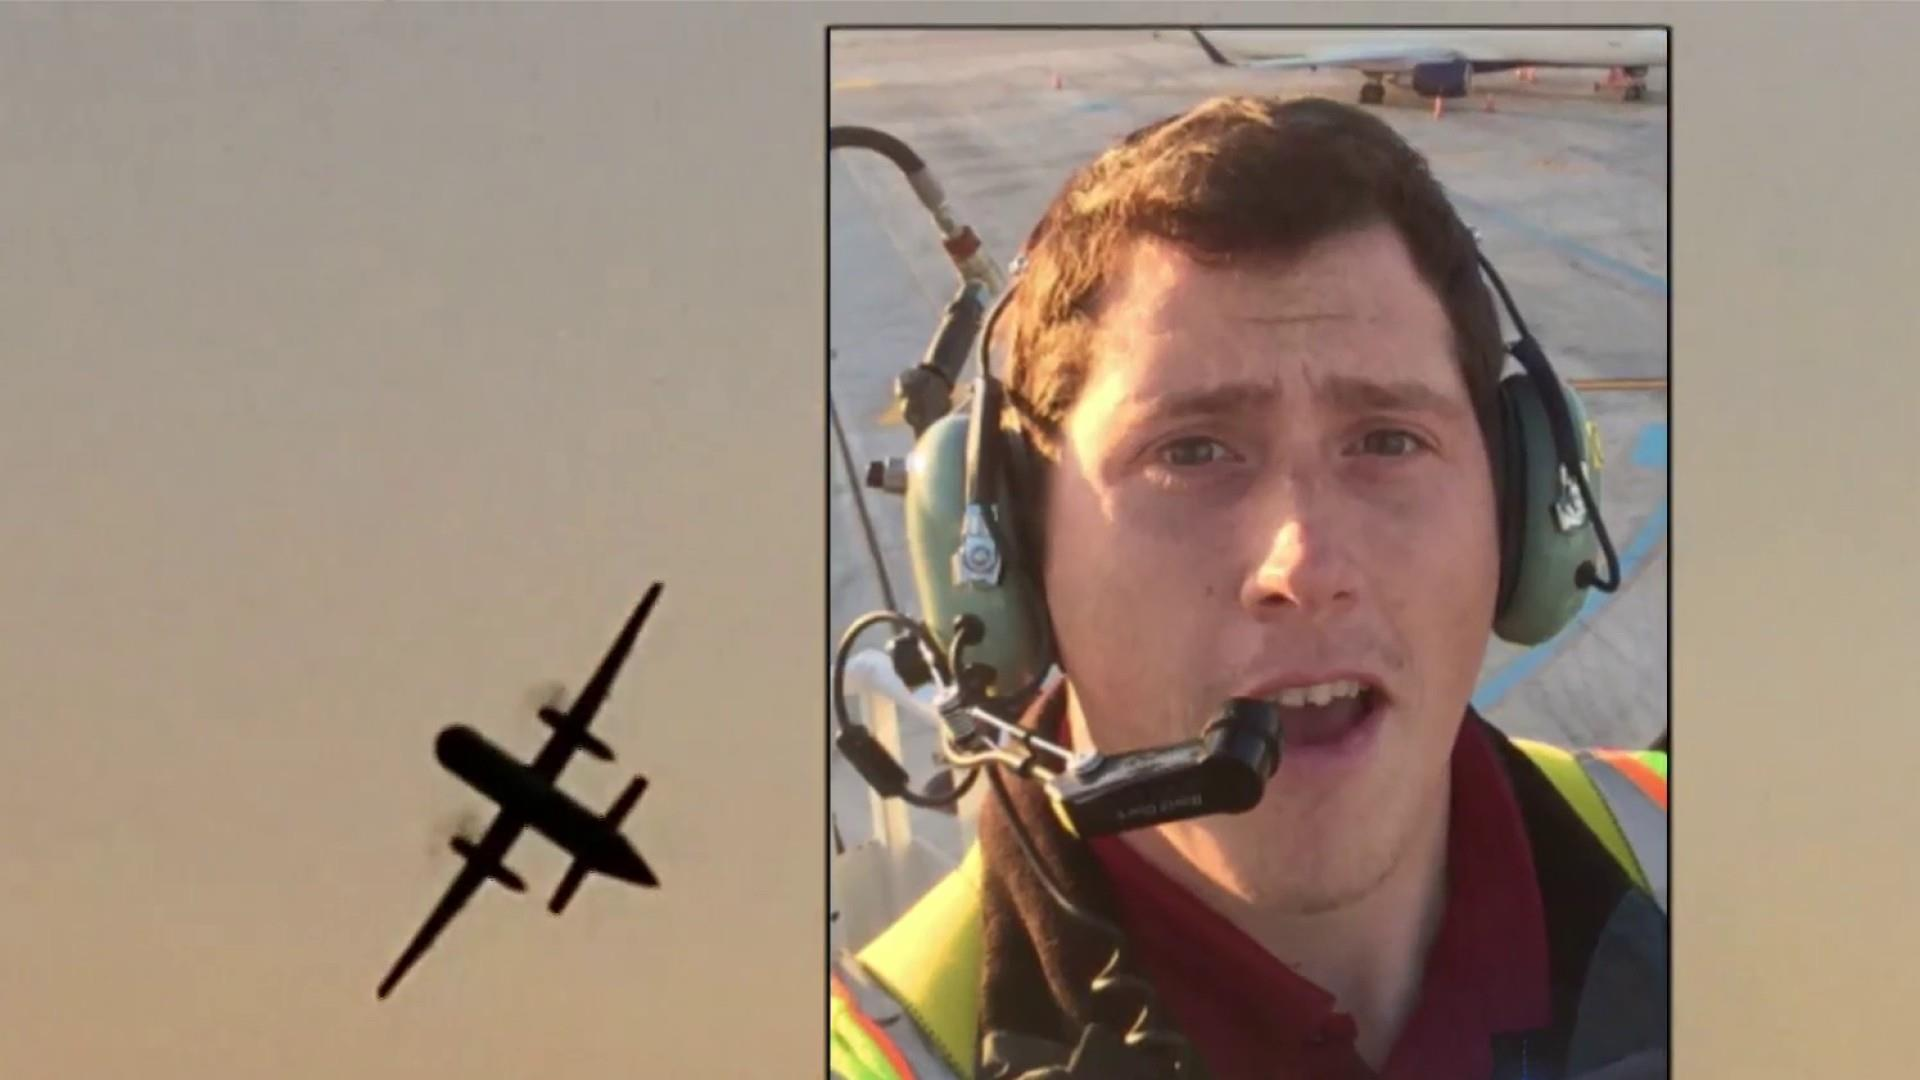 Family of man who stole plane and crashed it 'stunned and heartbroken'